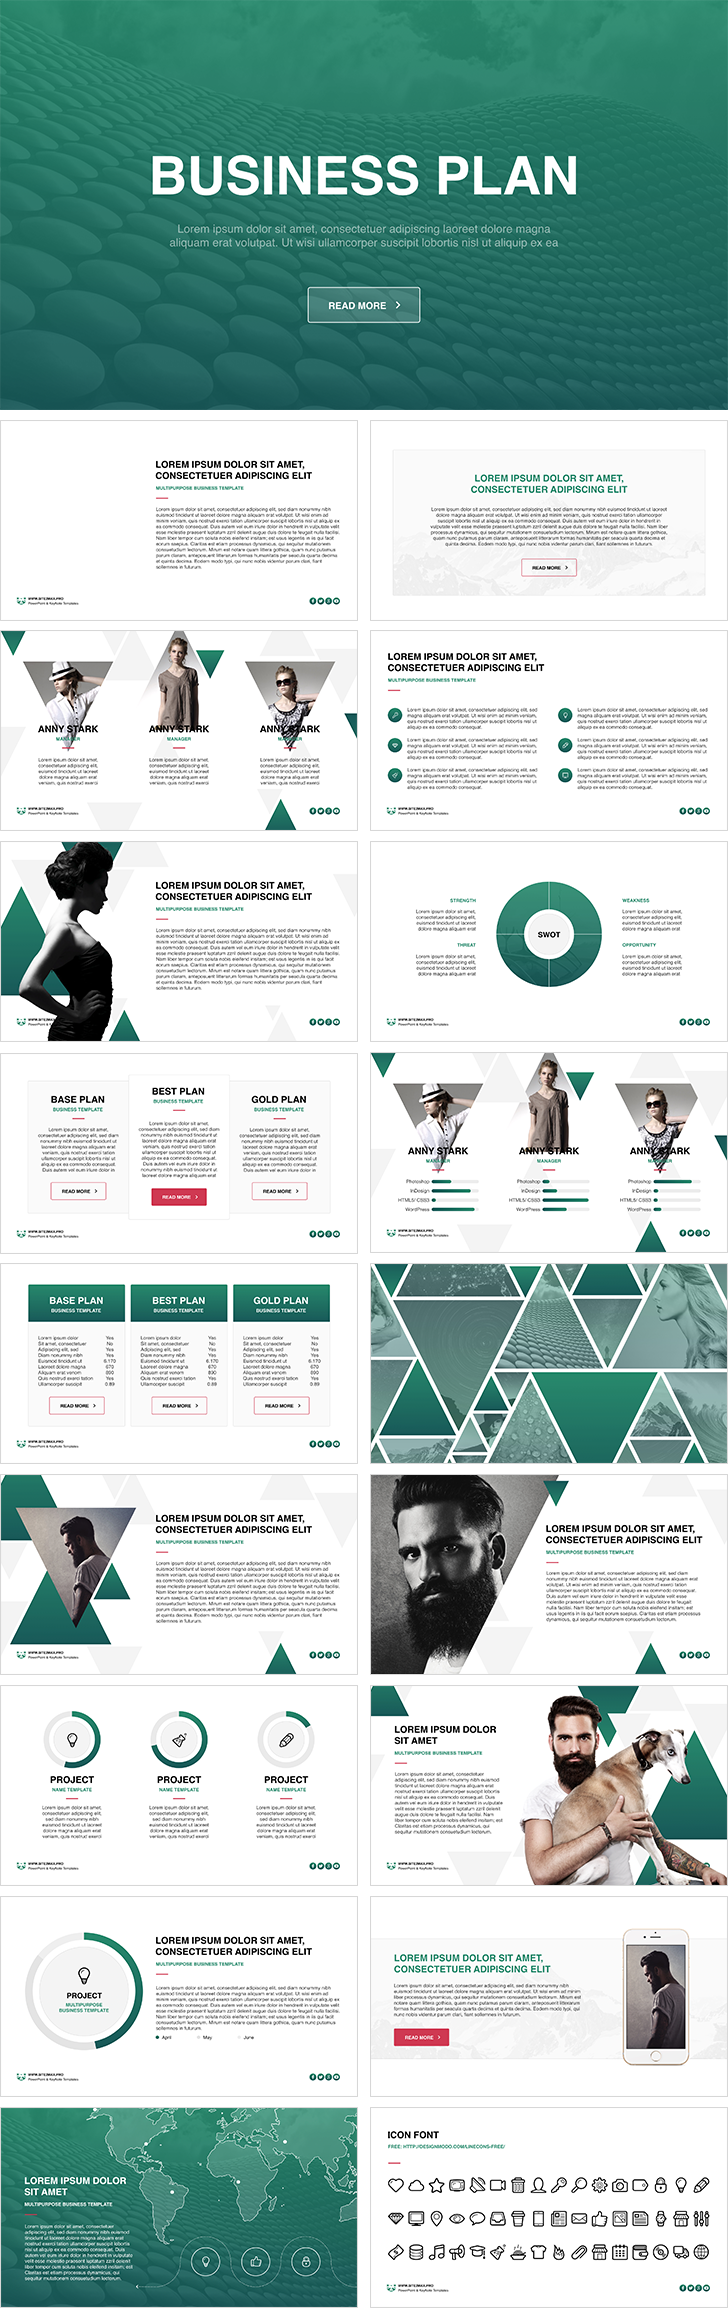 Business plan free powerpoint template download free business plan free powerpoint template cheaphphosting